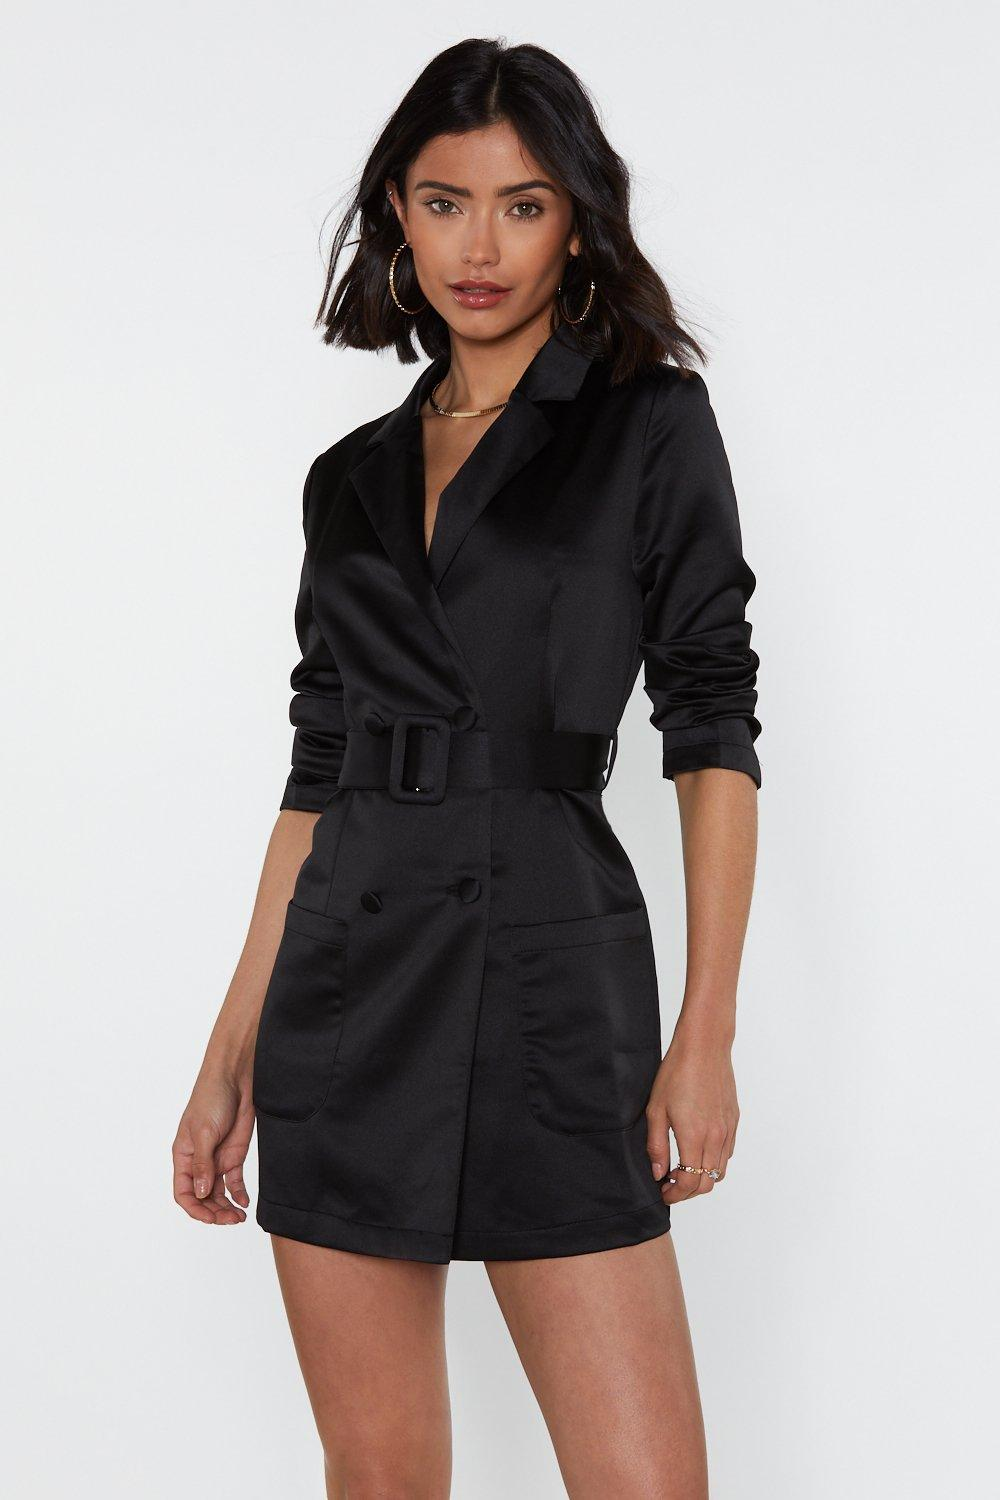 330fd0c4dea Womens Black Such a Hell Blazer Dress. Hover to zoom